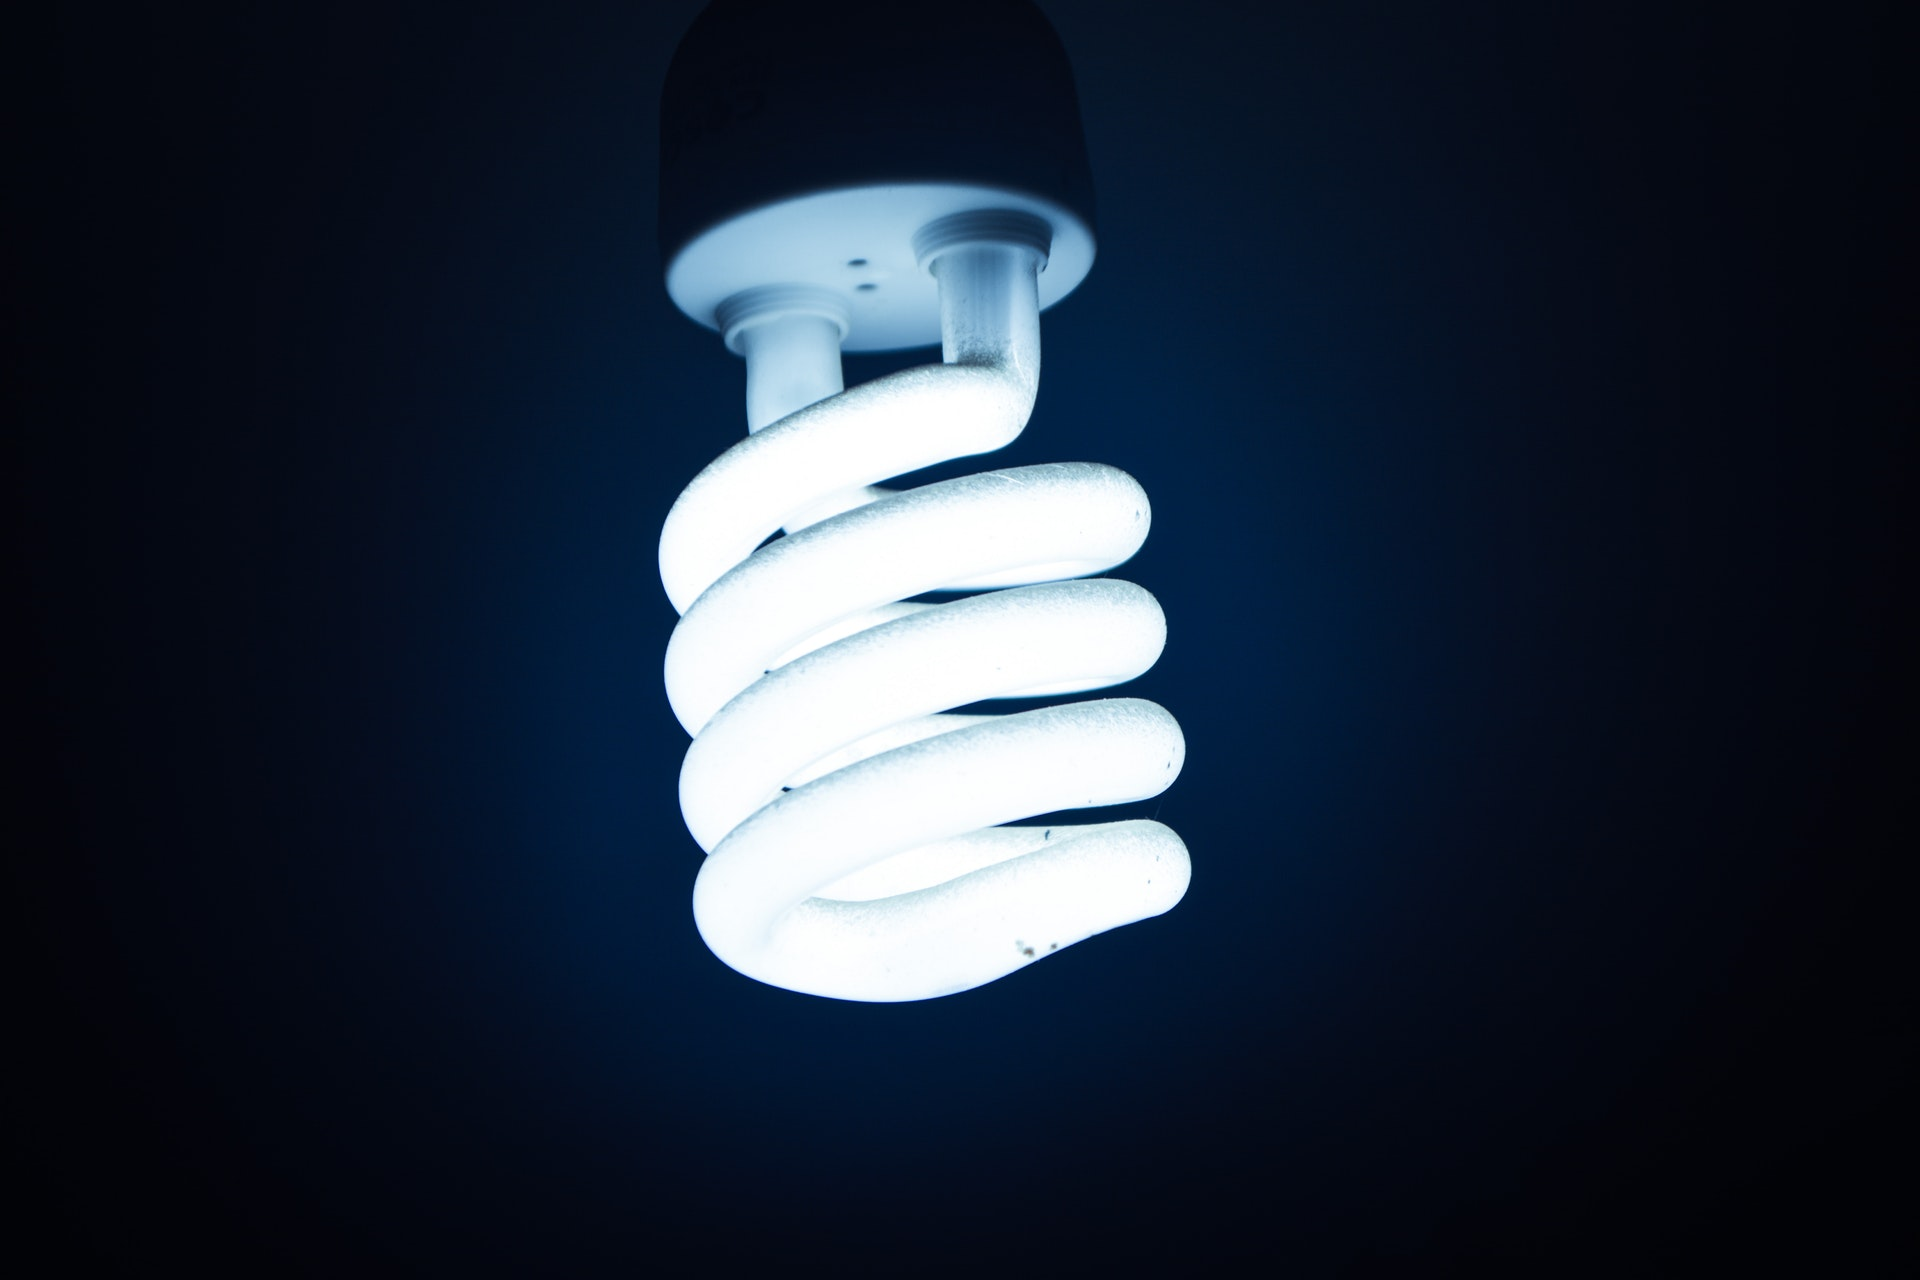 Switch to energy efficient LED bulbs